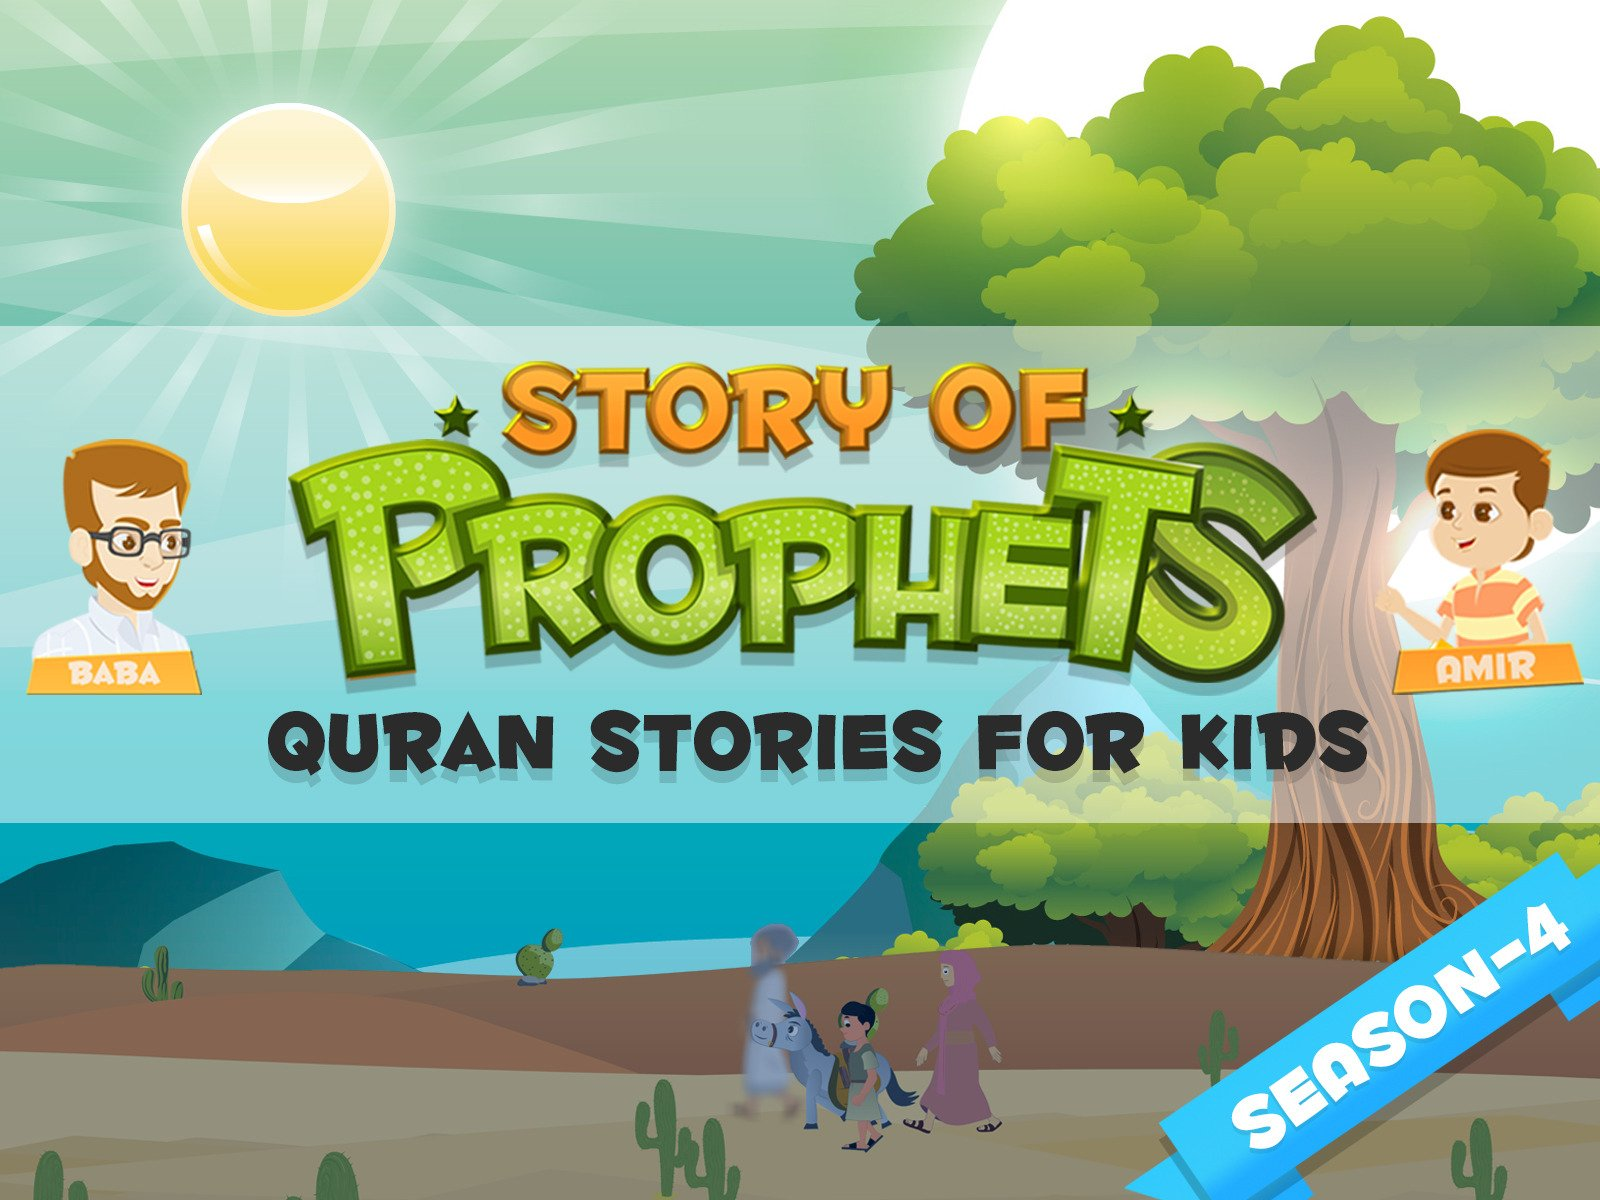 Quran Stories for Kids - Season 4